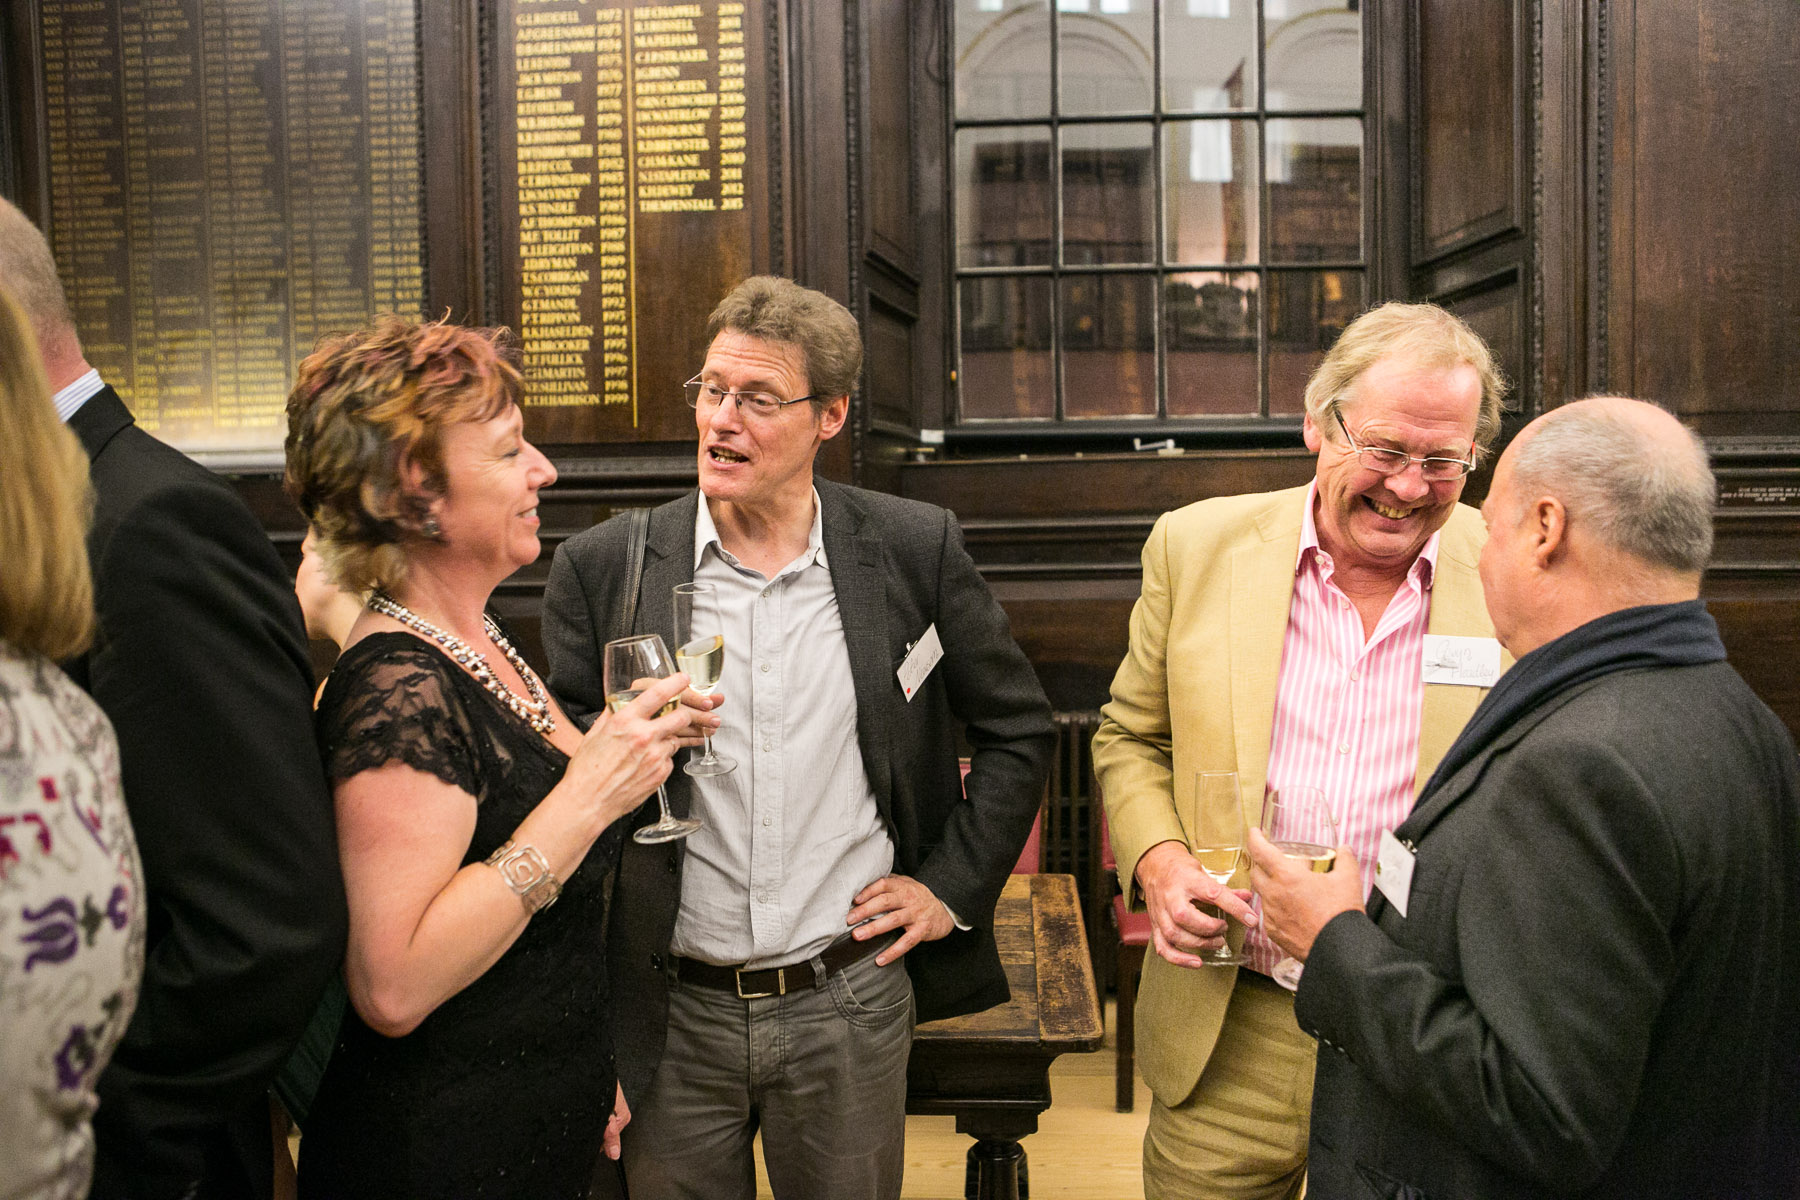 Jane Wenham-Jones, Peter Newsom, Gwyn Headley, Michael Meller